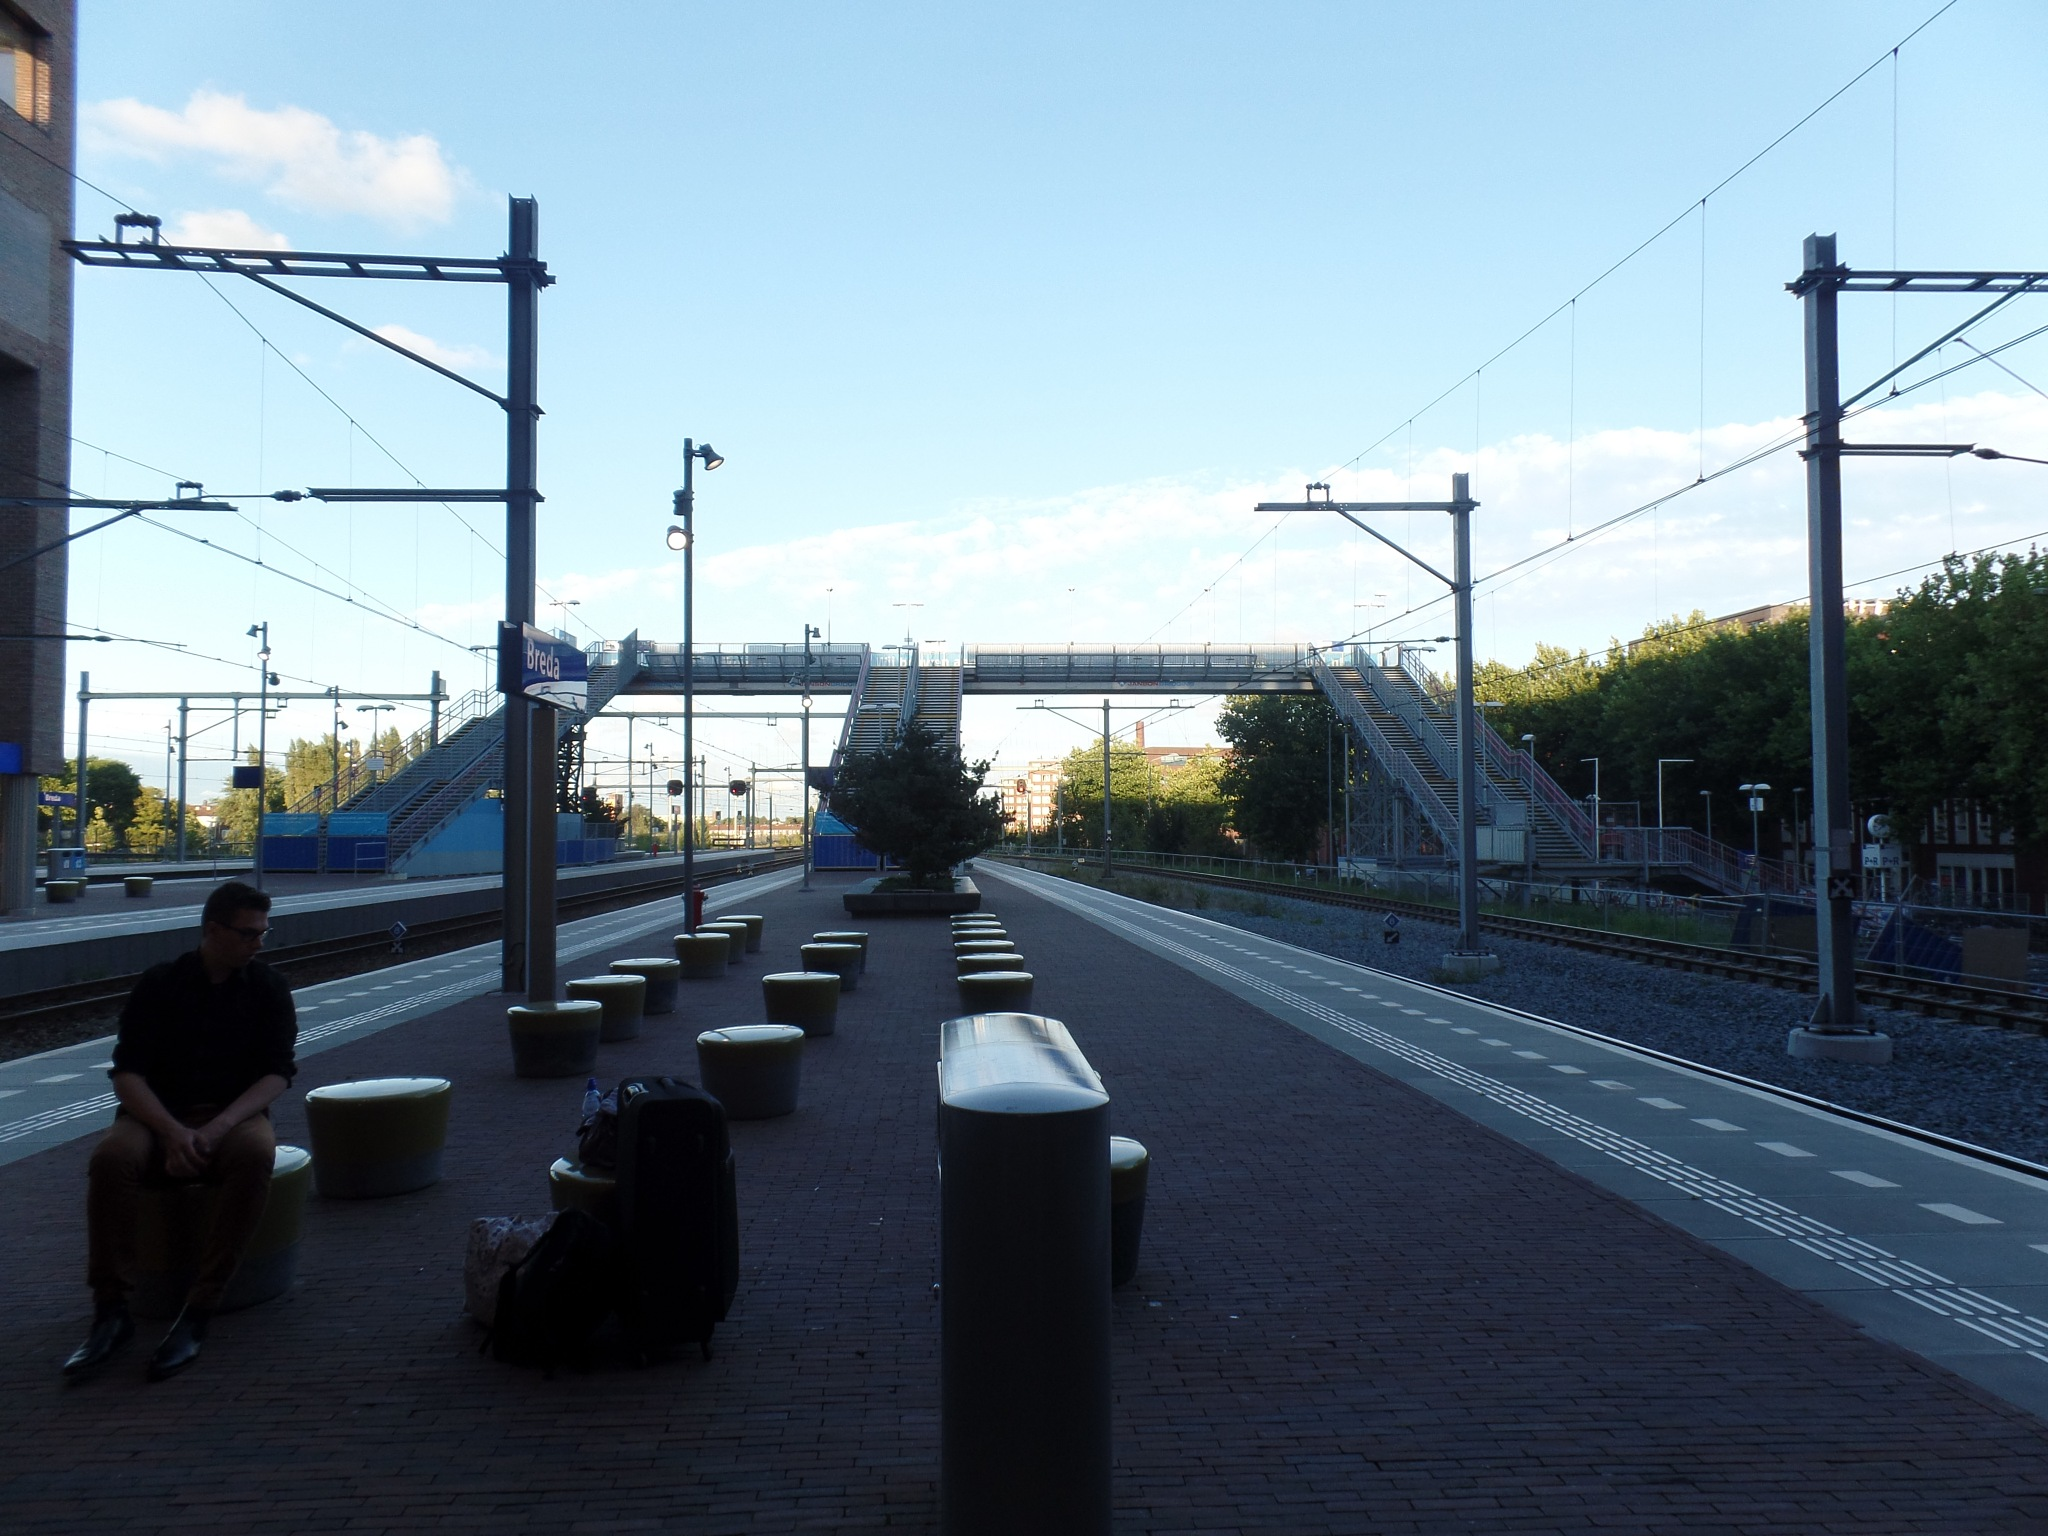 Station Breda by ingrid1960